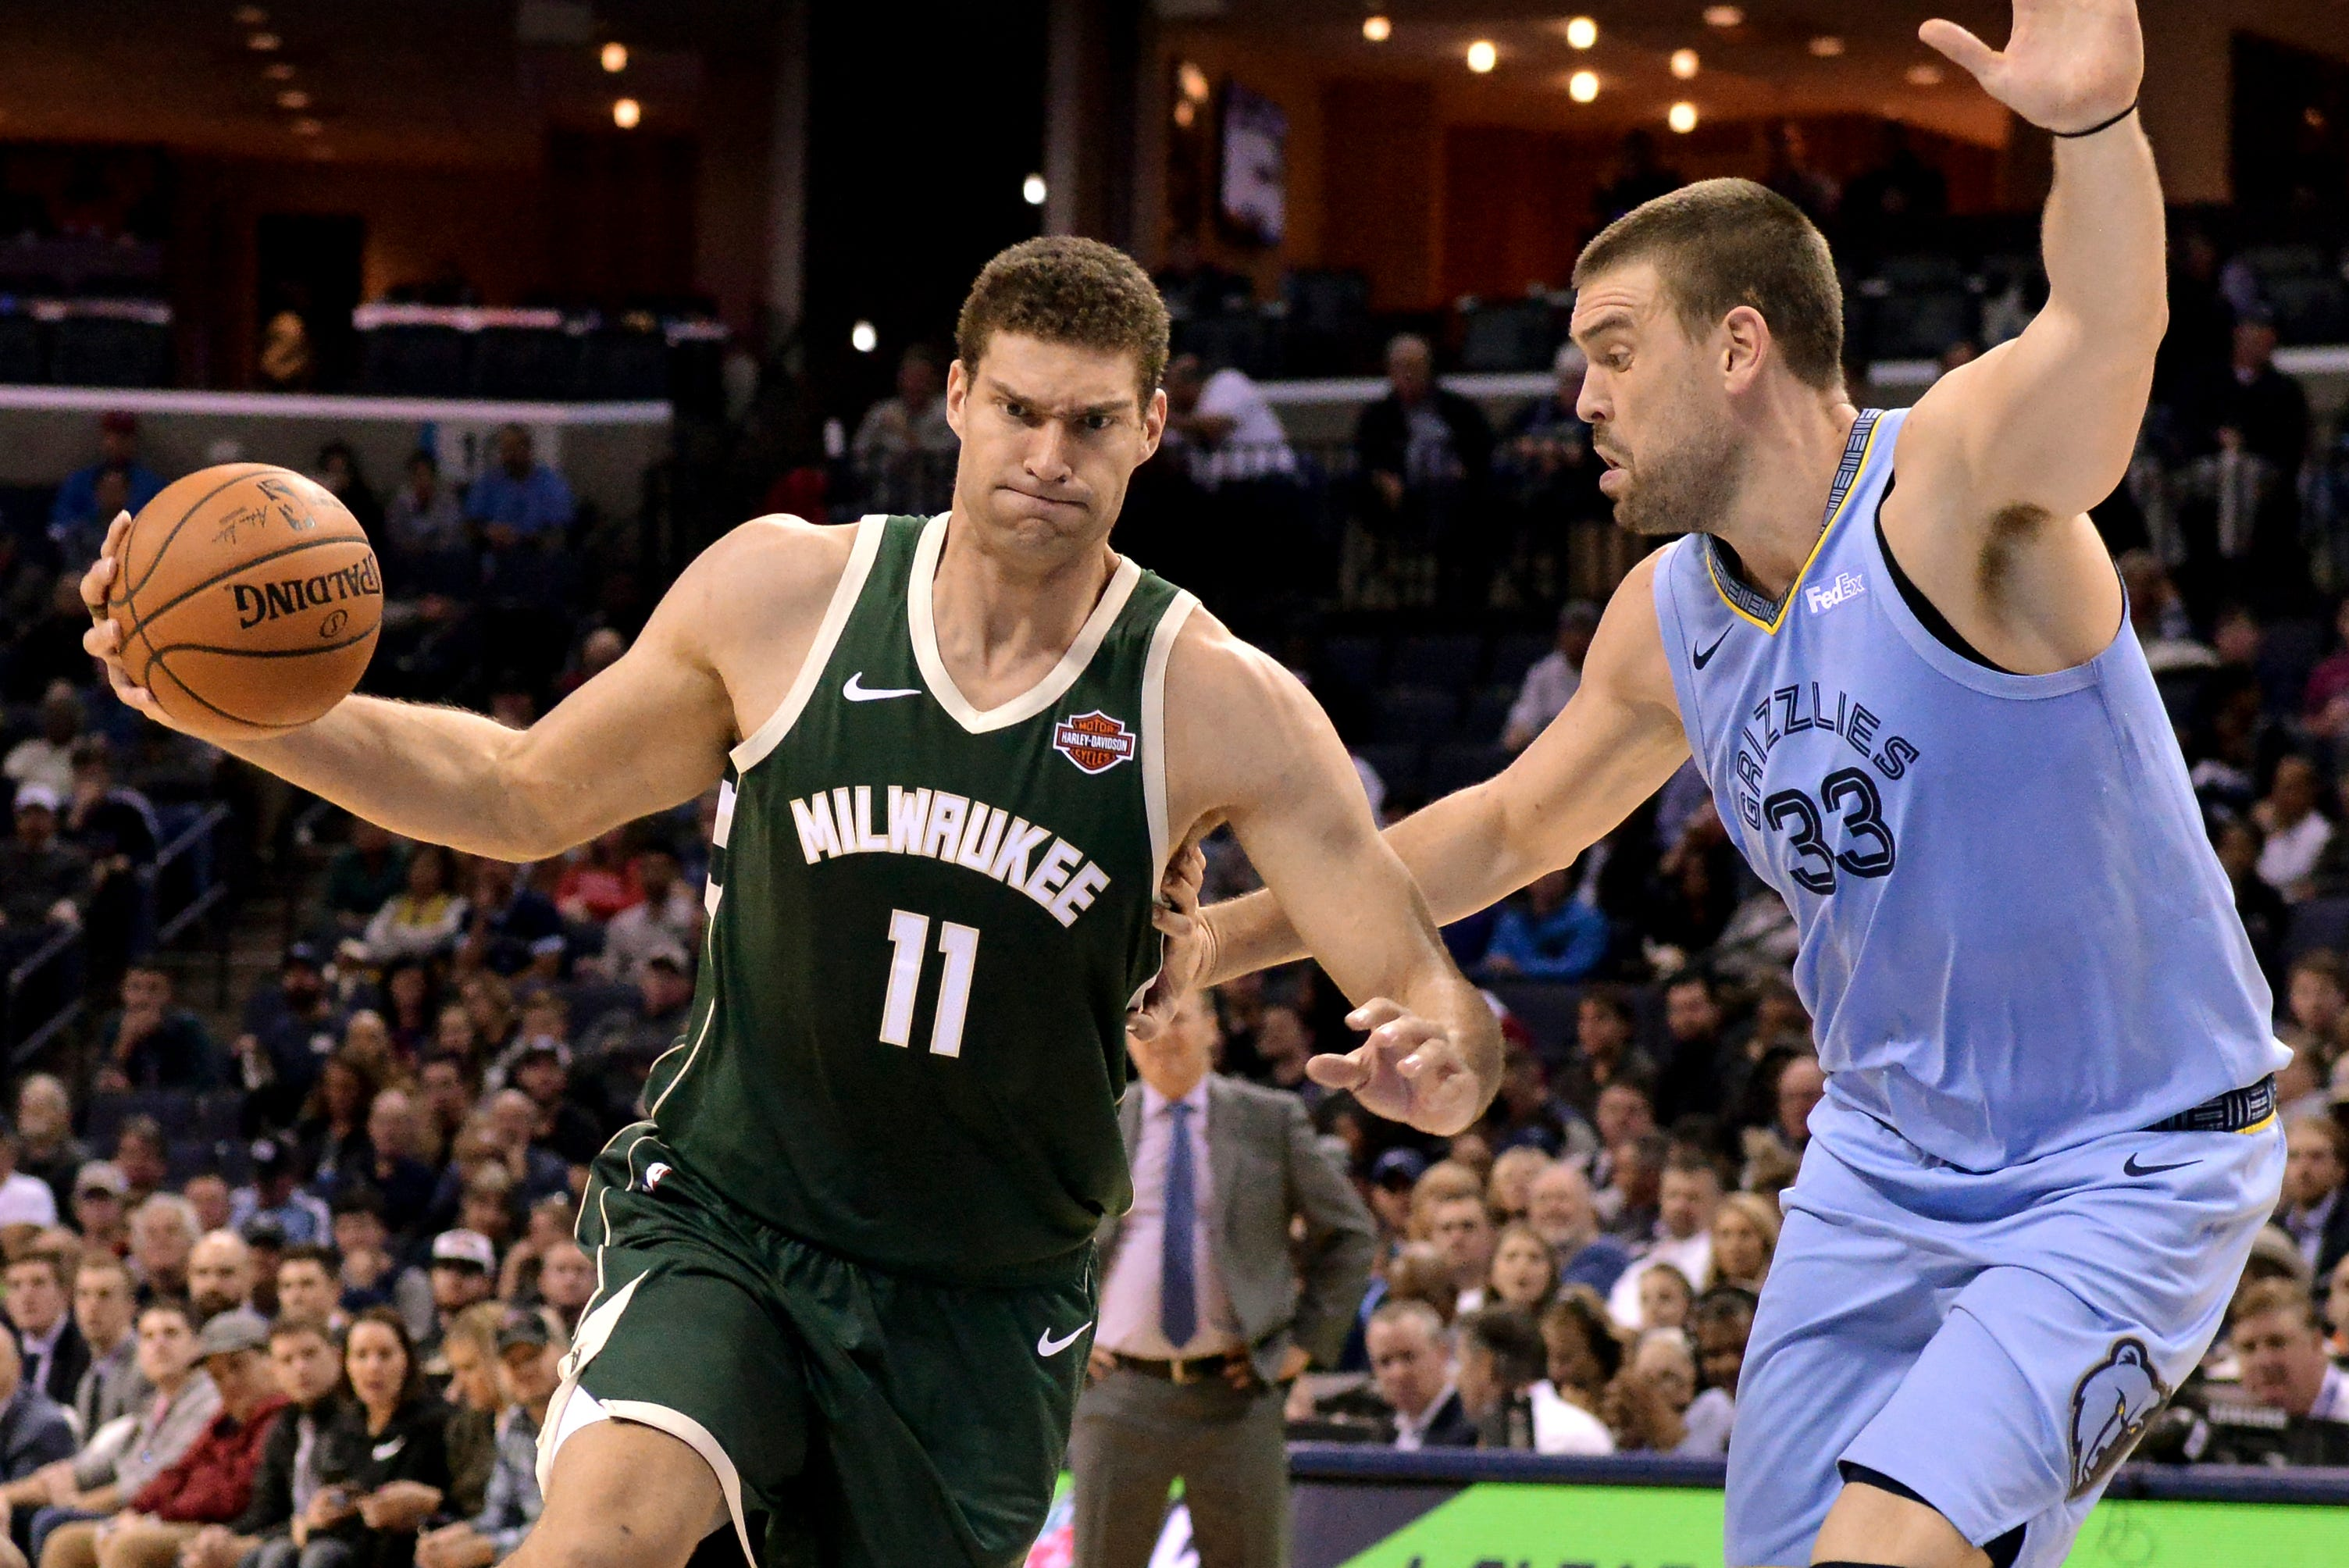 Antetokounmpo leads streaking Bucks past Grizzlies 111-101